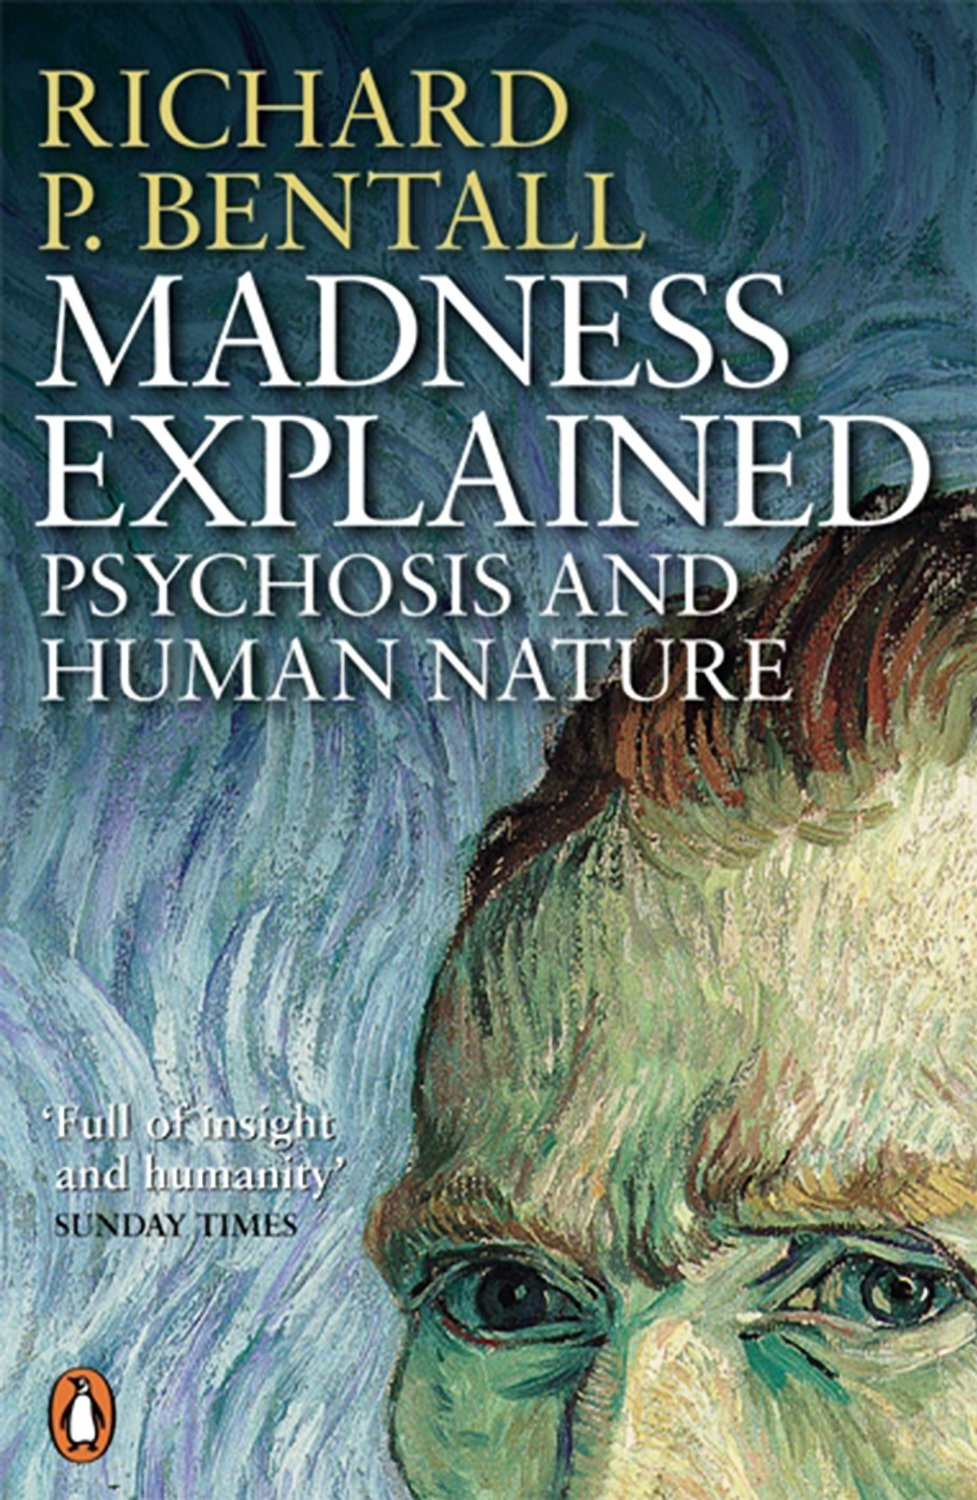 Bentall, Richard.  Madness Explained: Psychosis and Human Nature